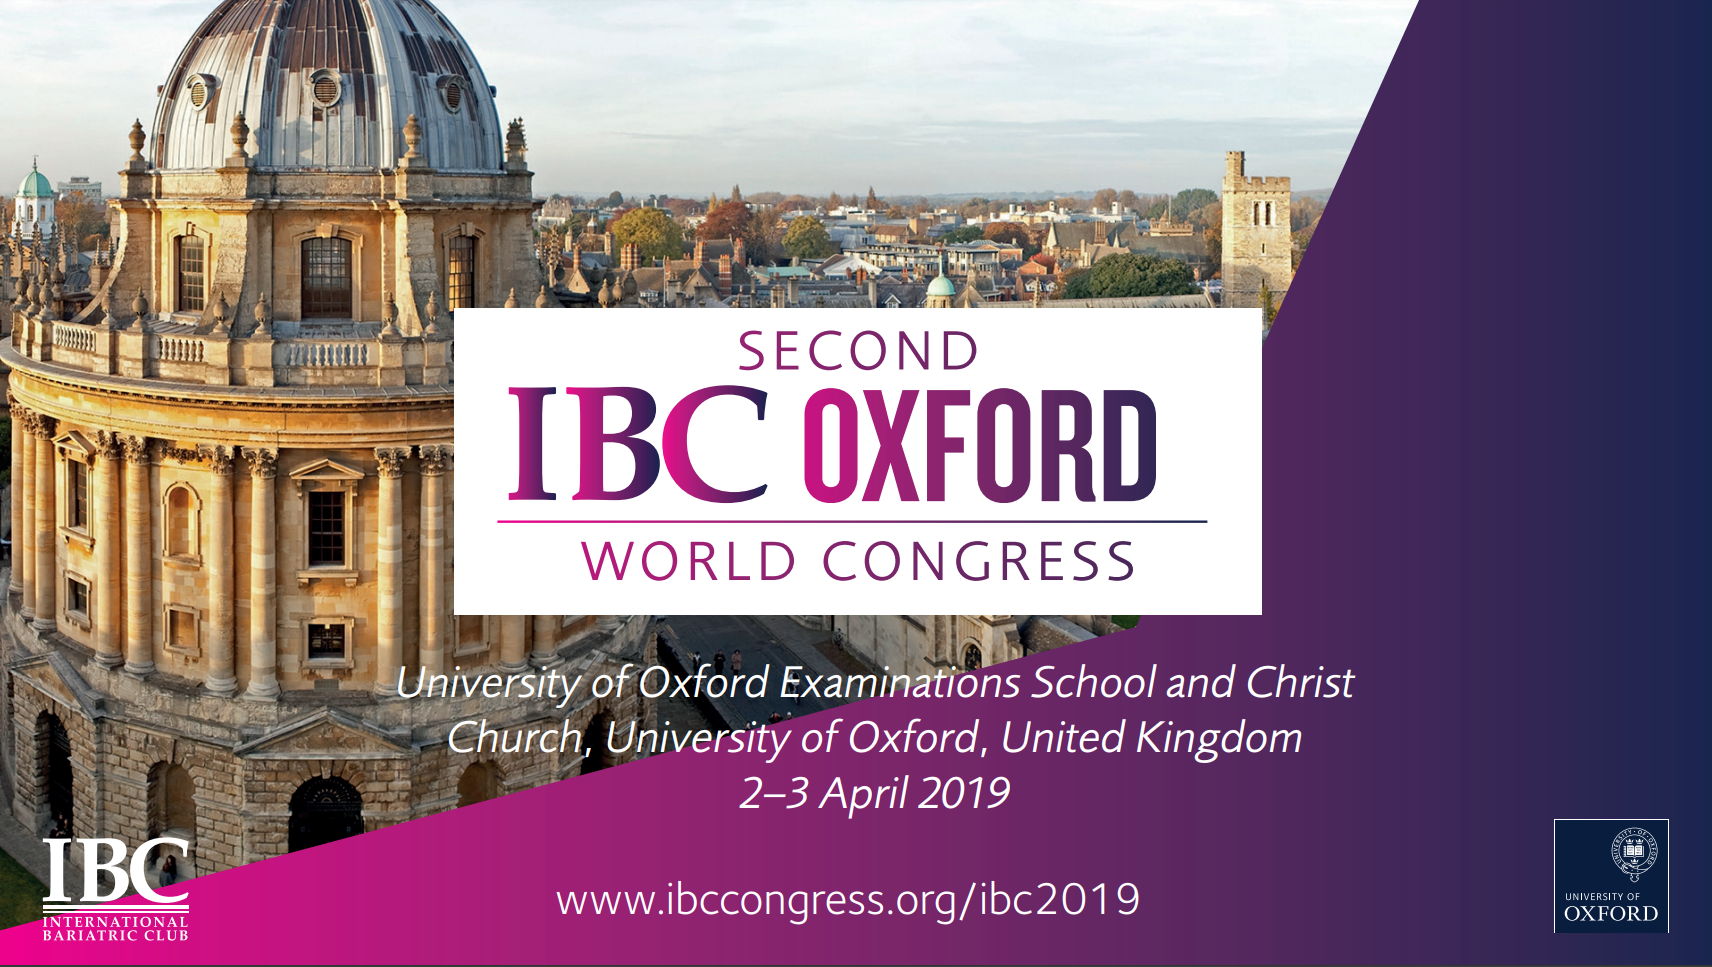 ibccongress.org/ibc2019